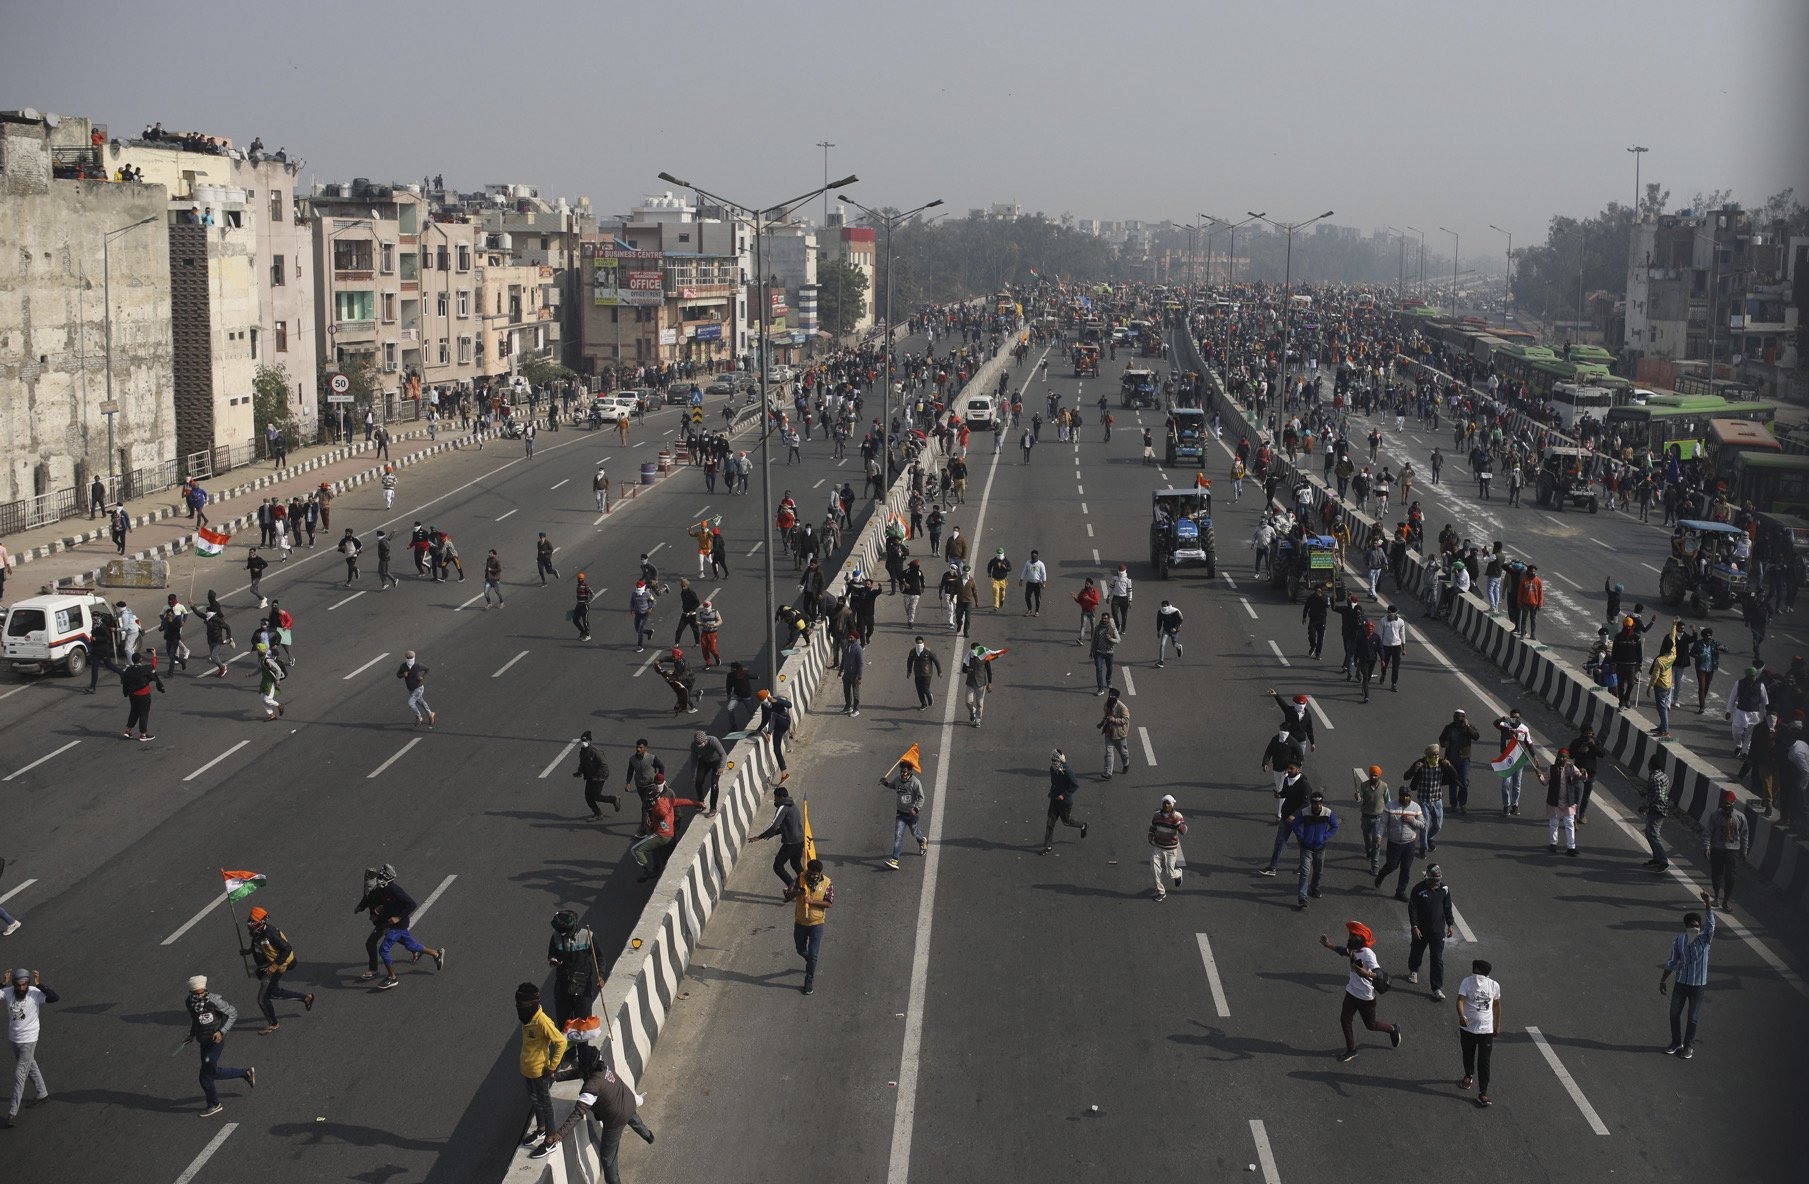 Tractors bring protests to the Indian capital on Republic Day